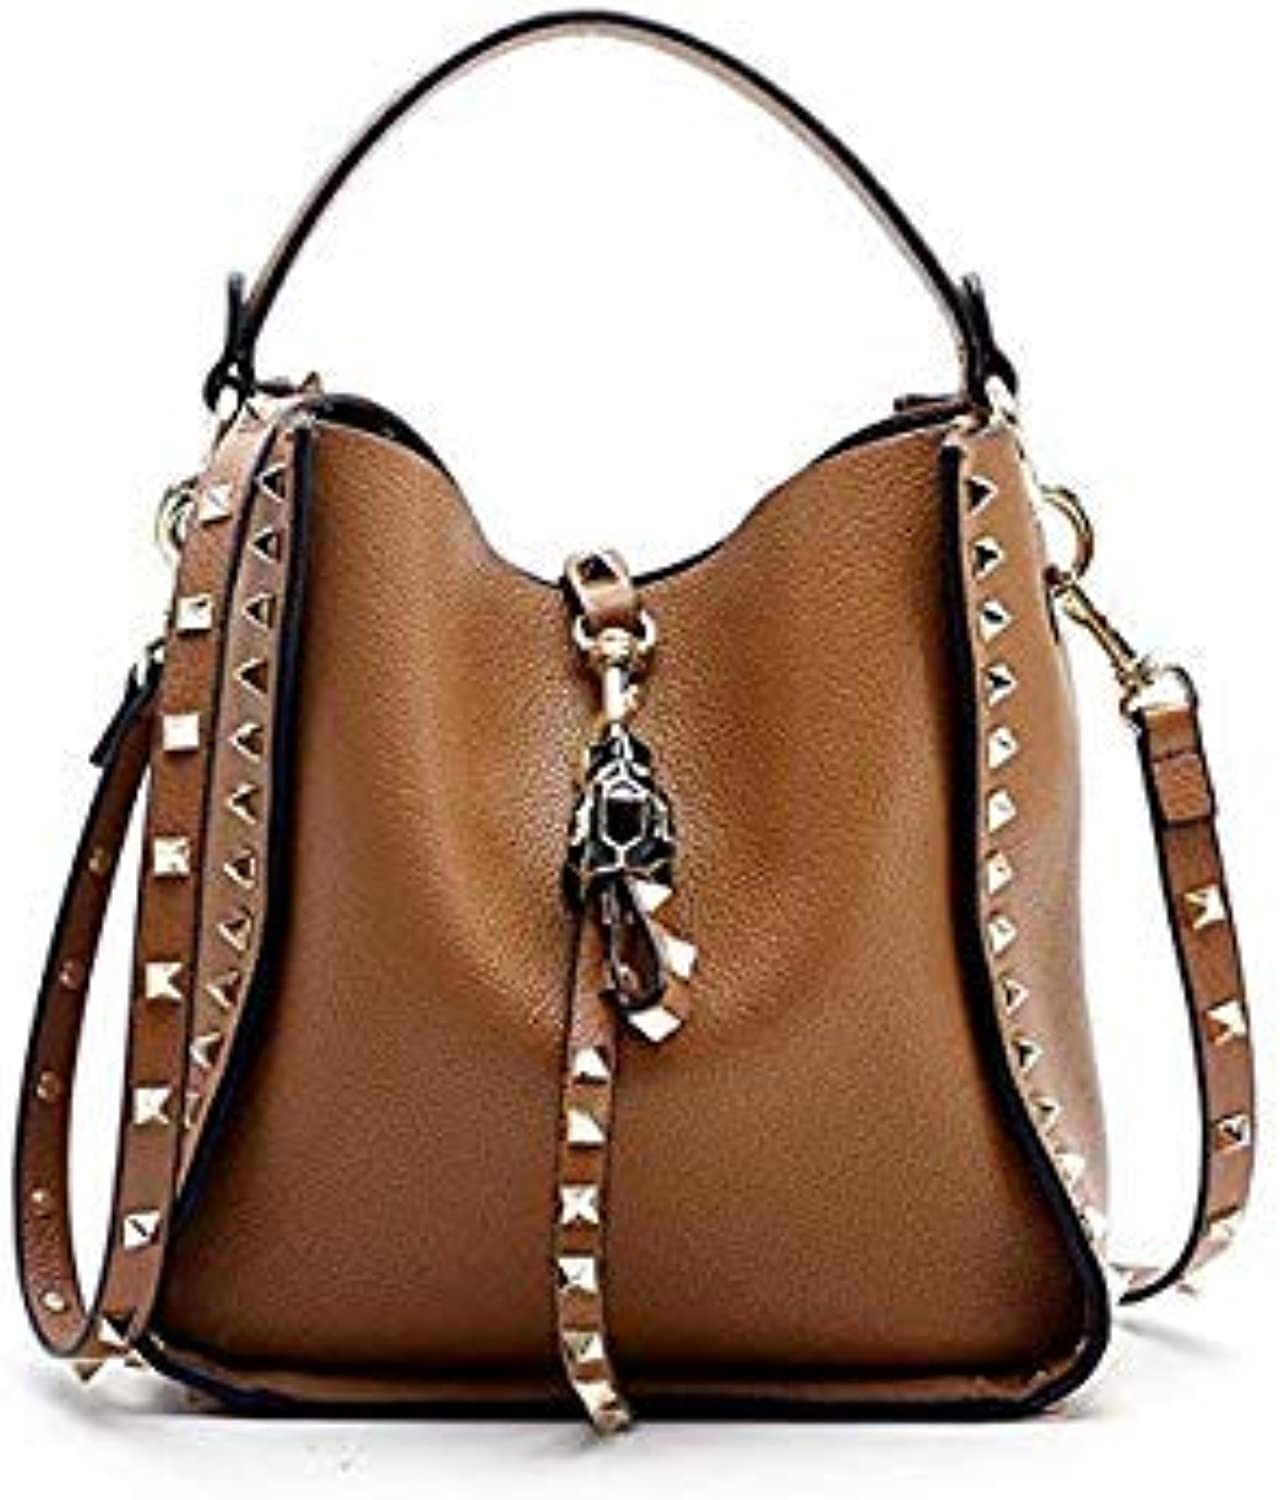 90377ae5c20d Genuine Leather Famous Brand Rivet Crossbody Bags for Women ...